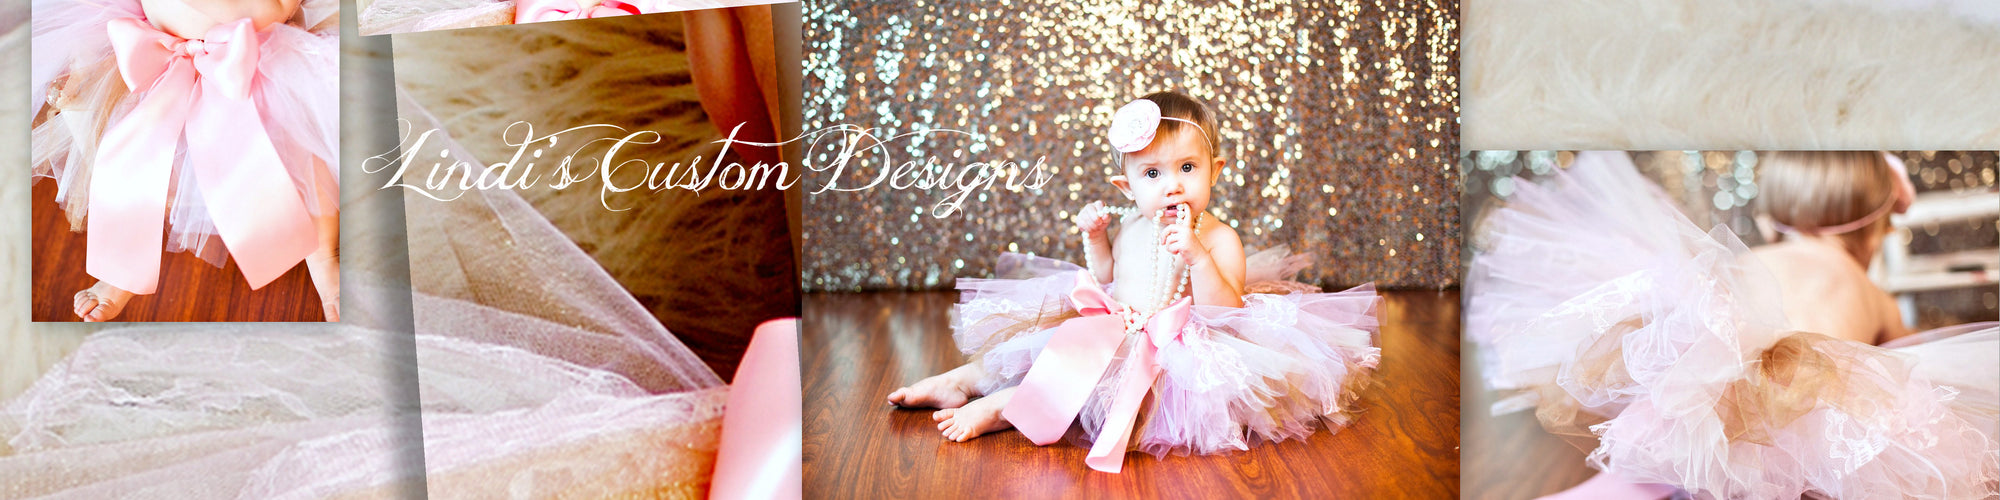 Lindi's Custom Designs